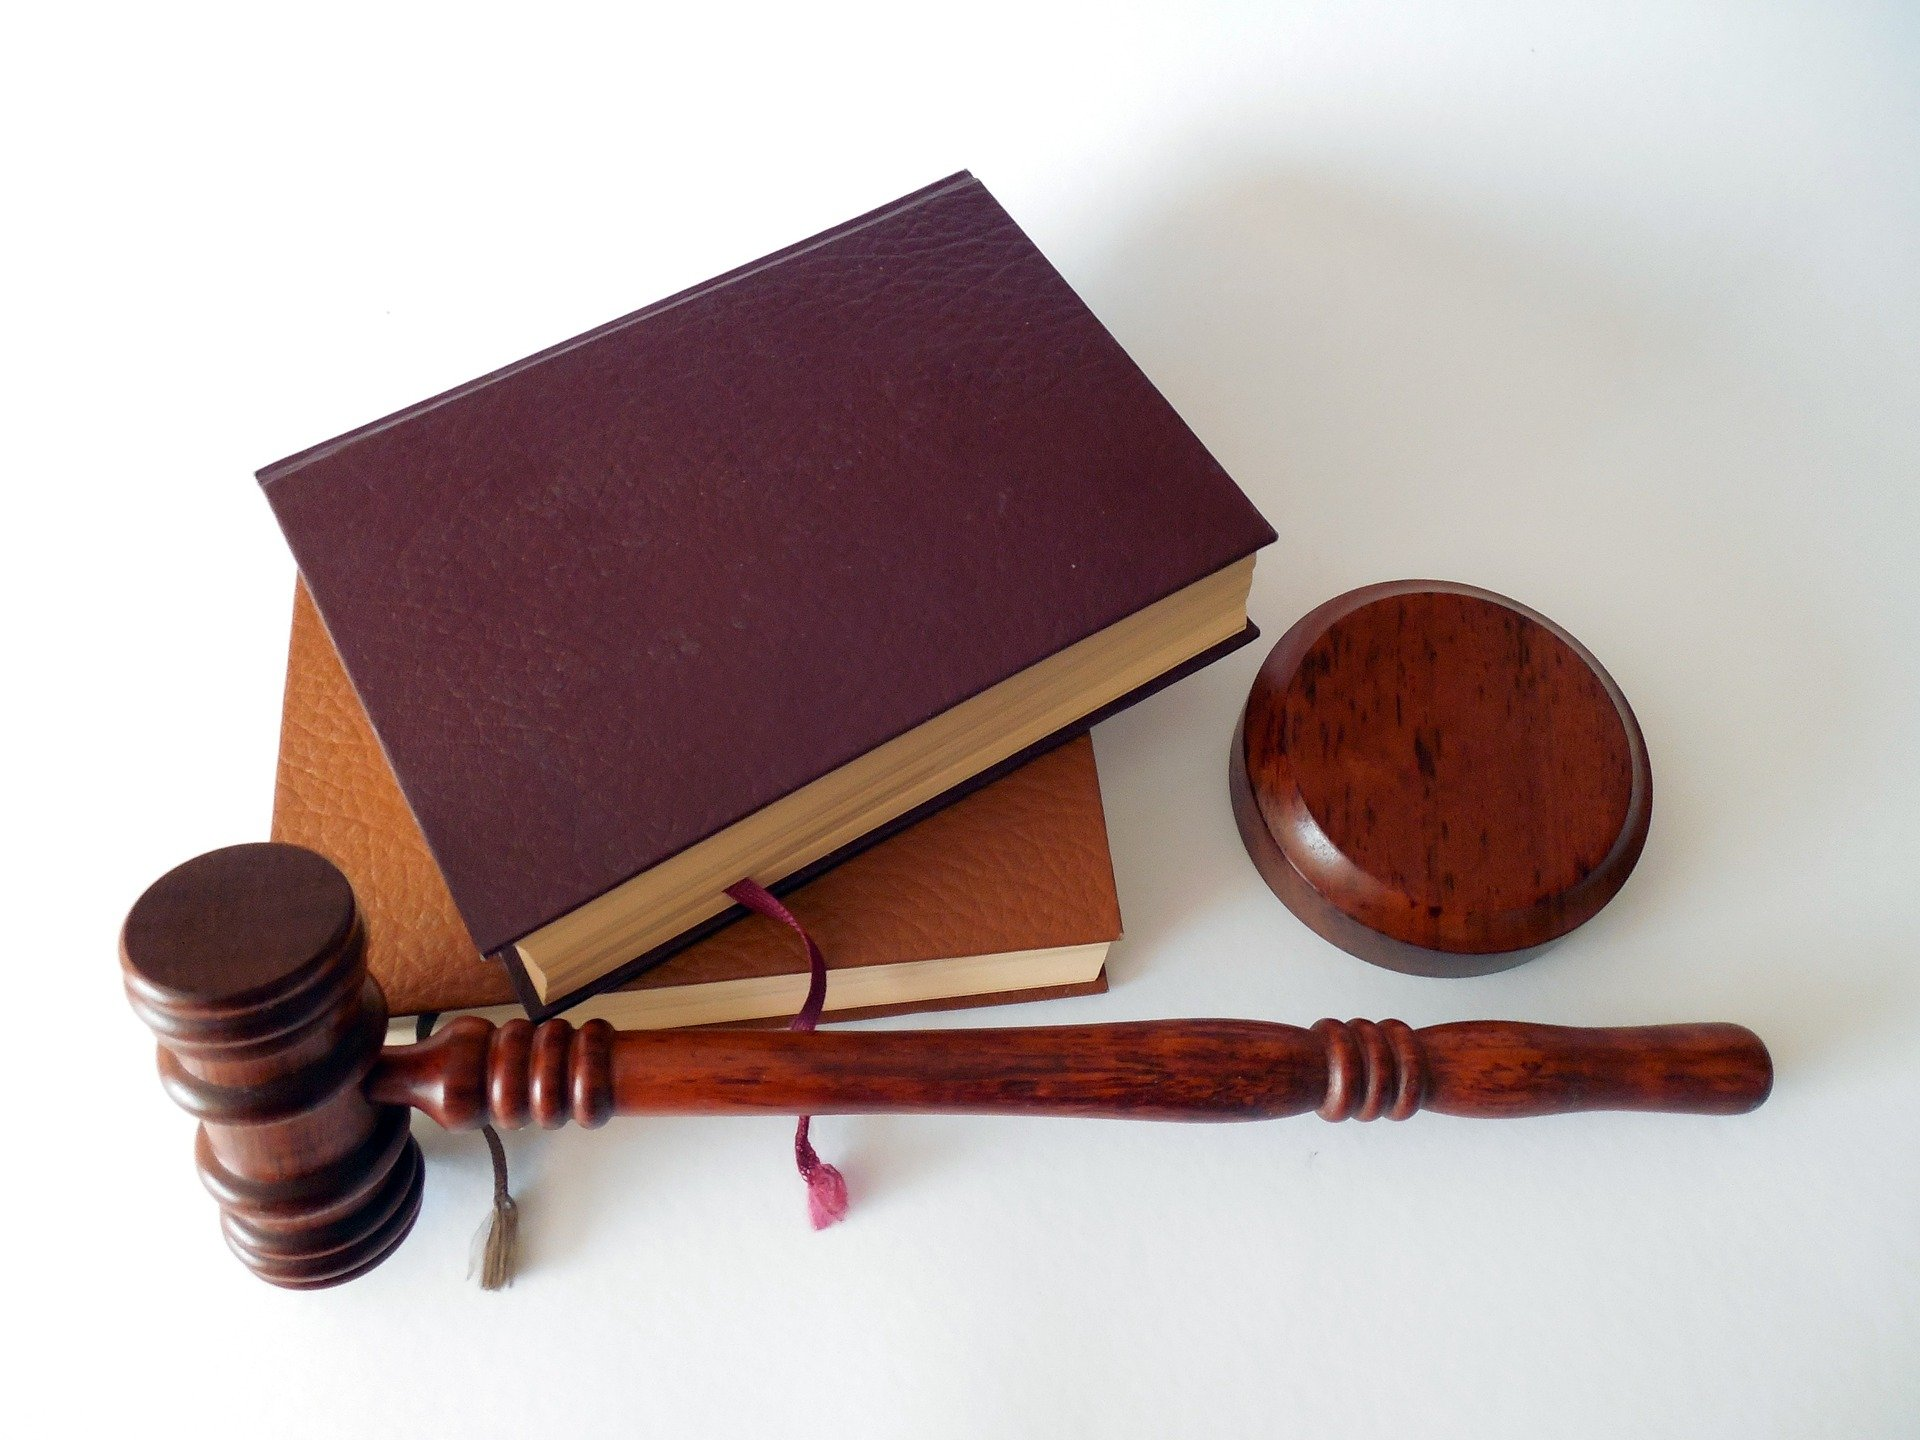 Some books and a gavel.